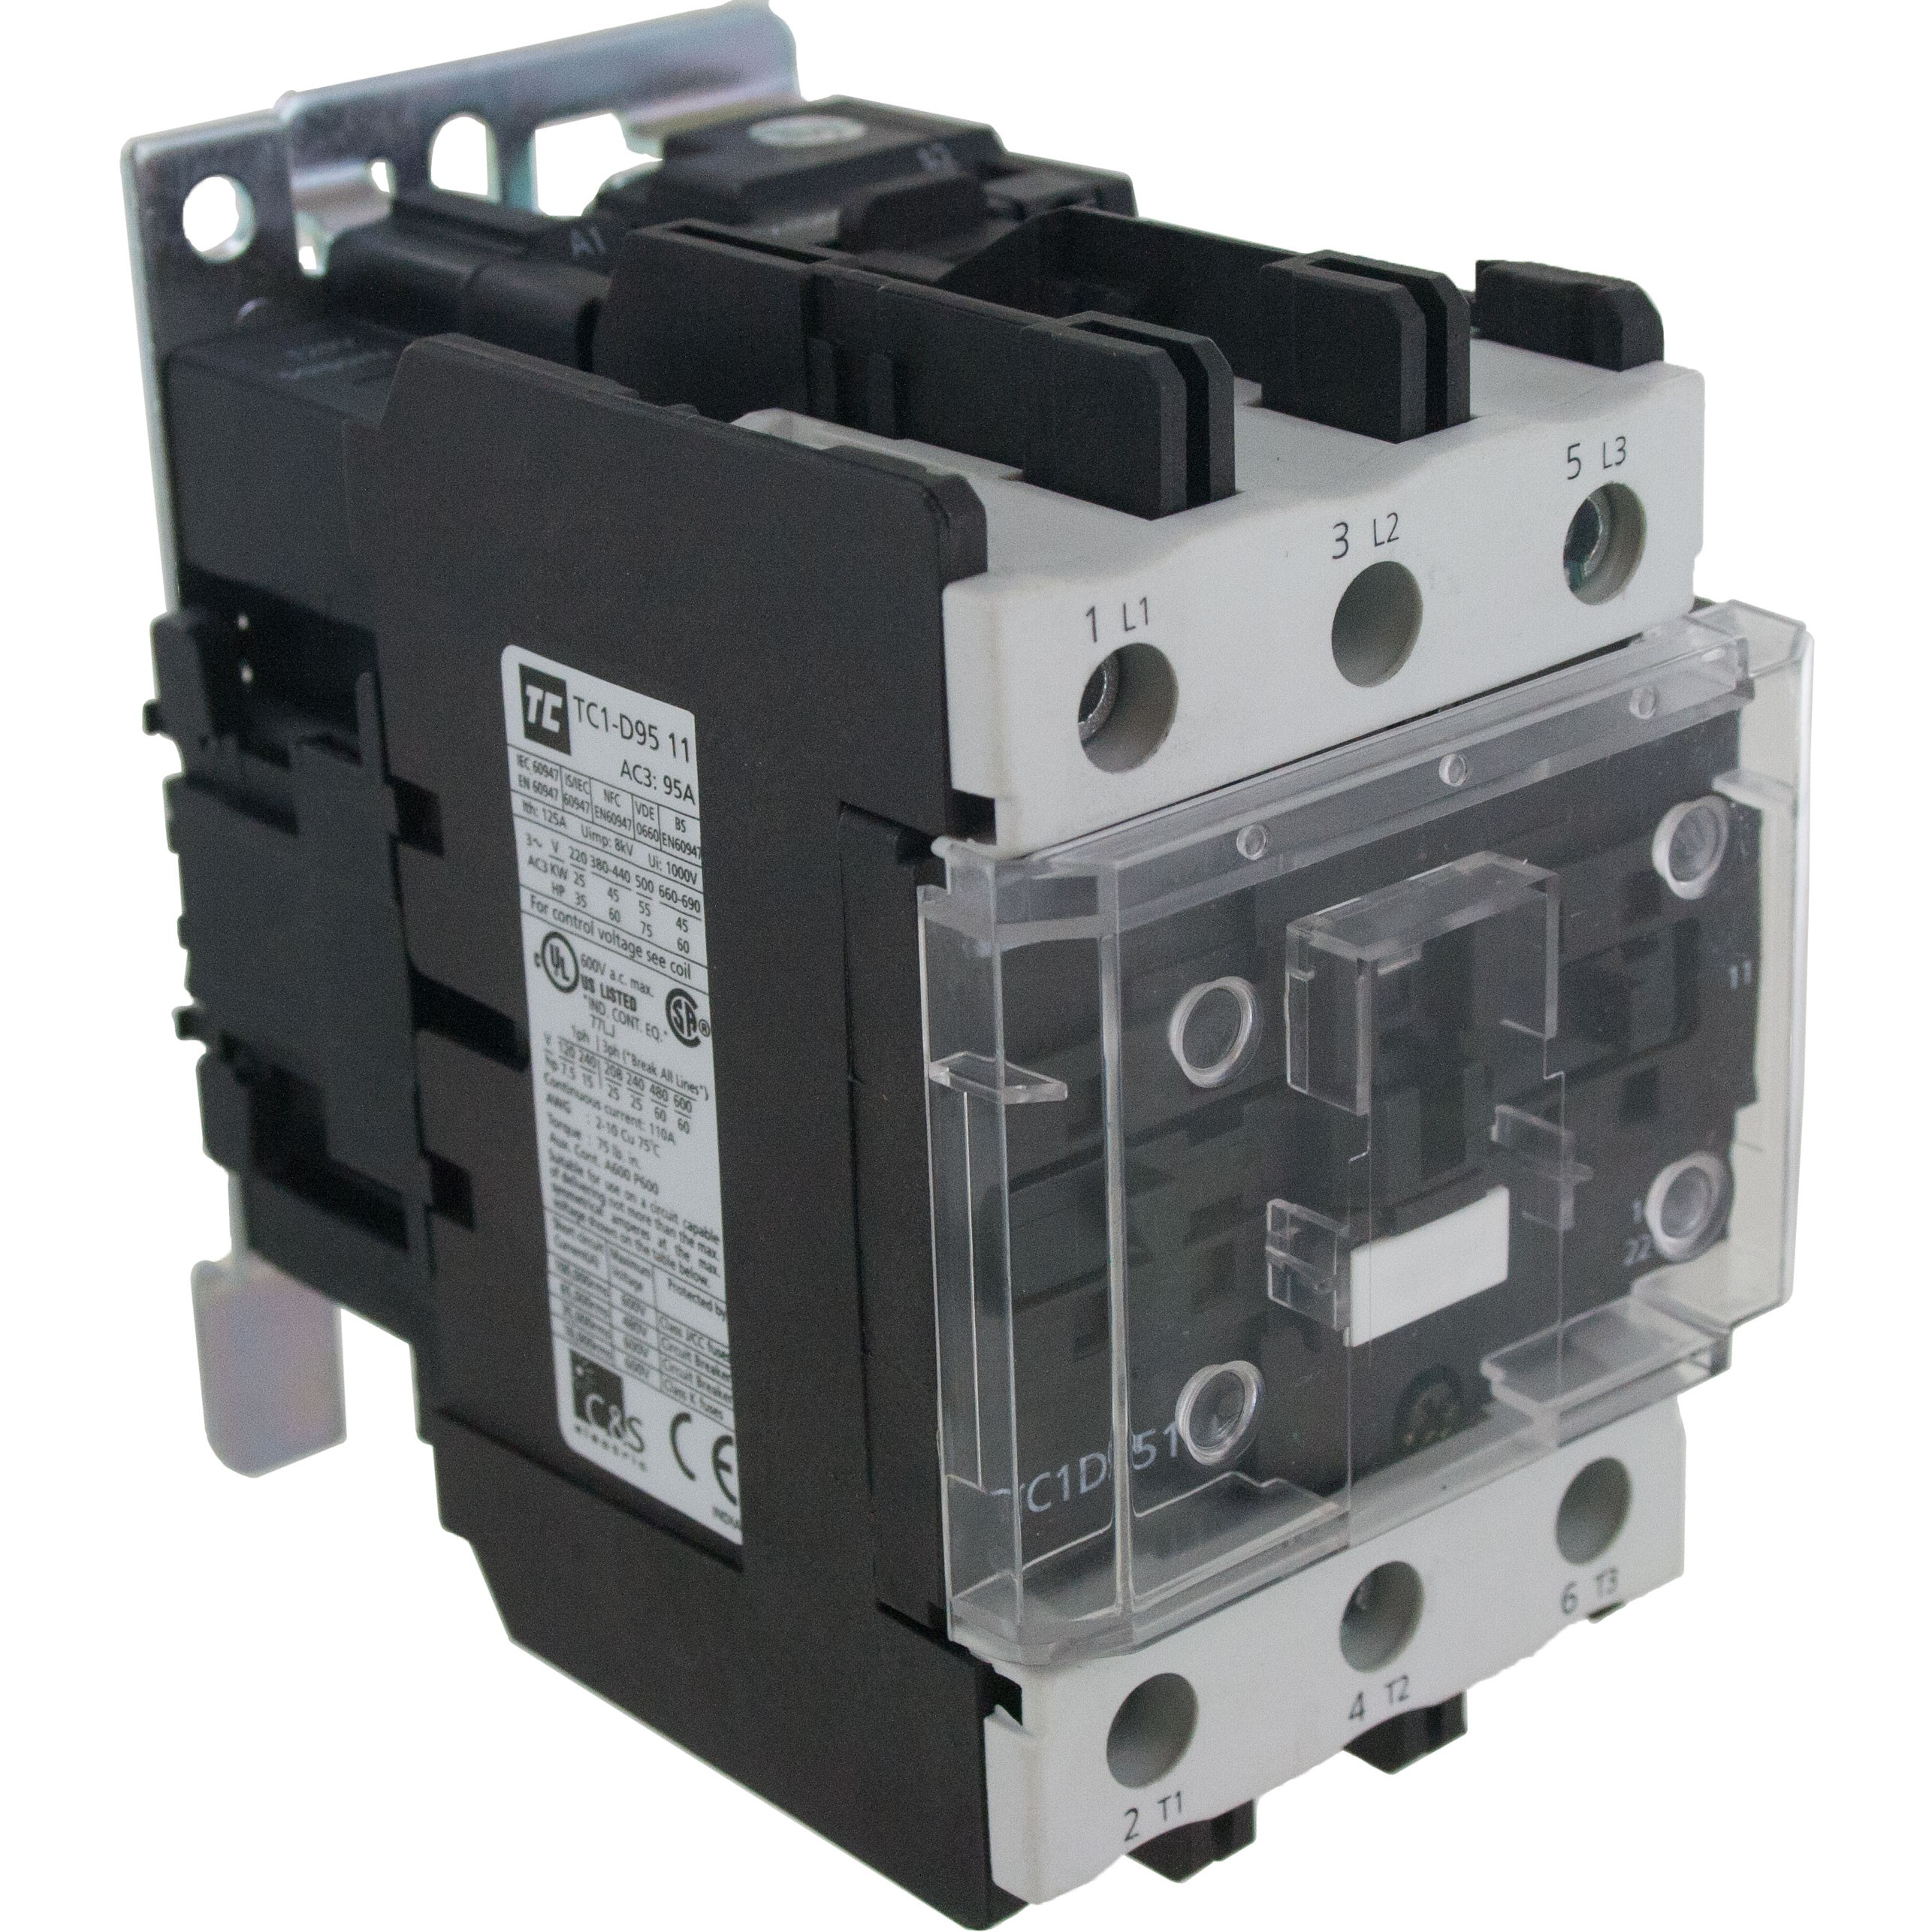 3 Pole Contactor 95 Amp 1 N/O - 1 N/C 440 Volt AC Coil Angle